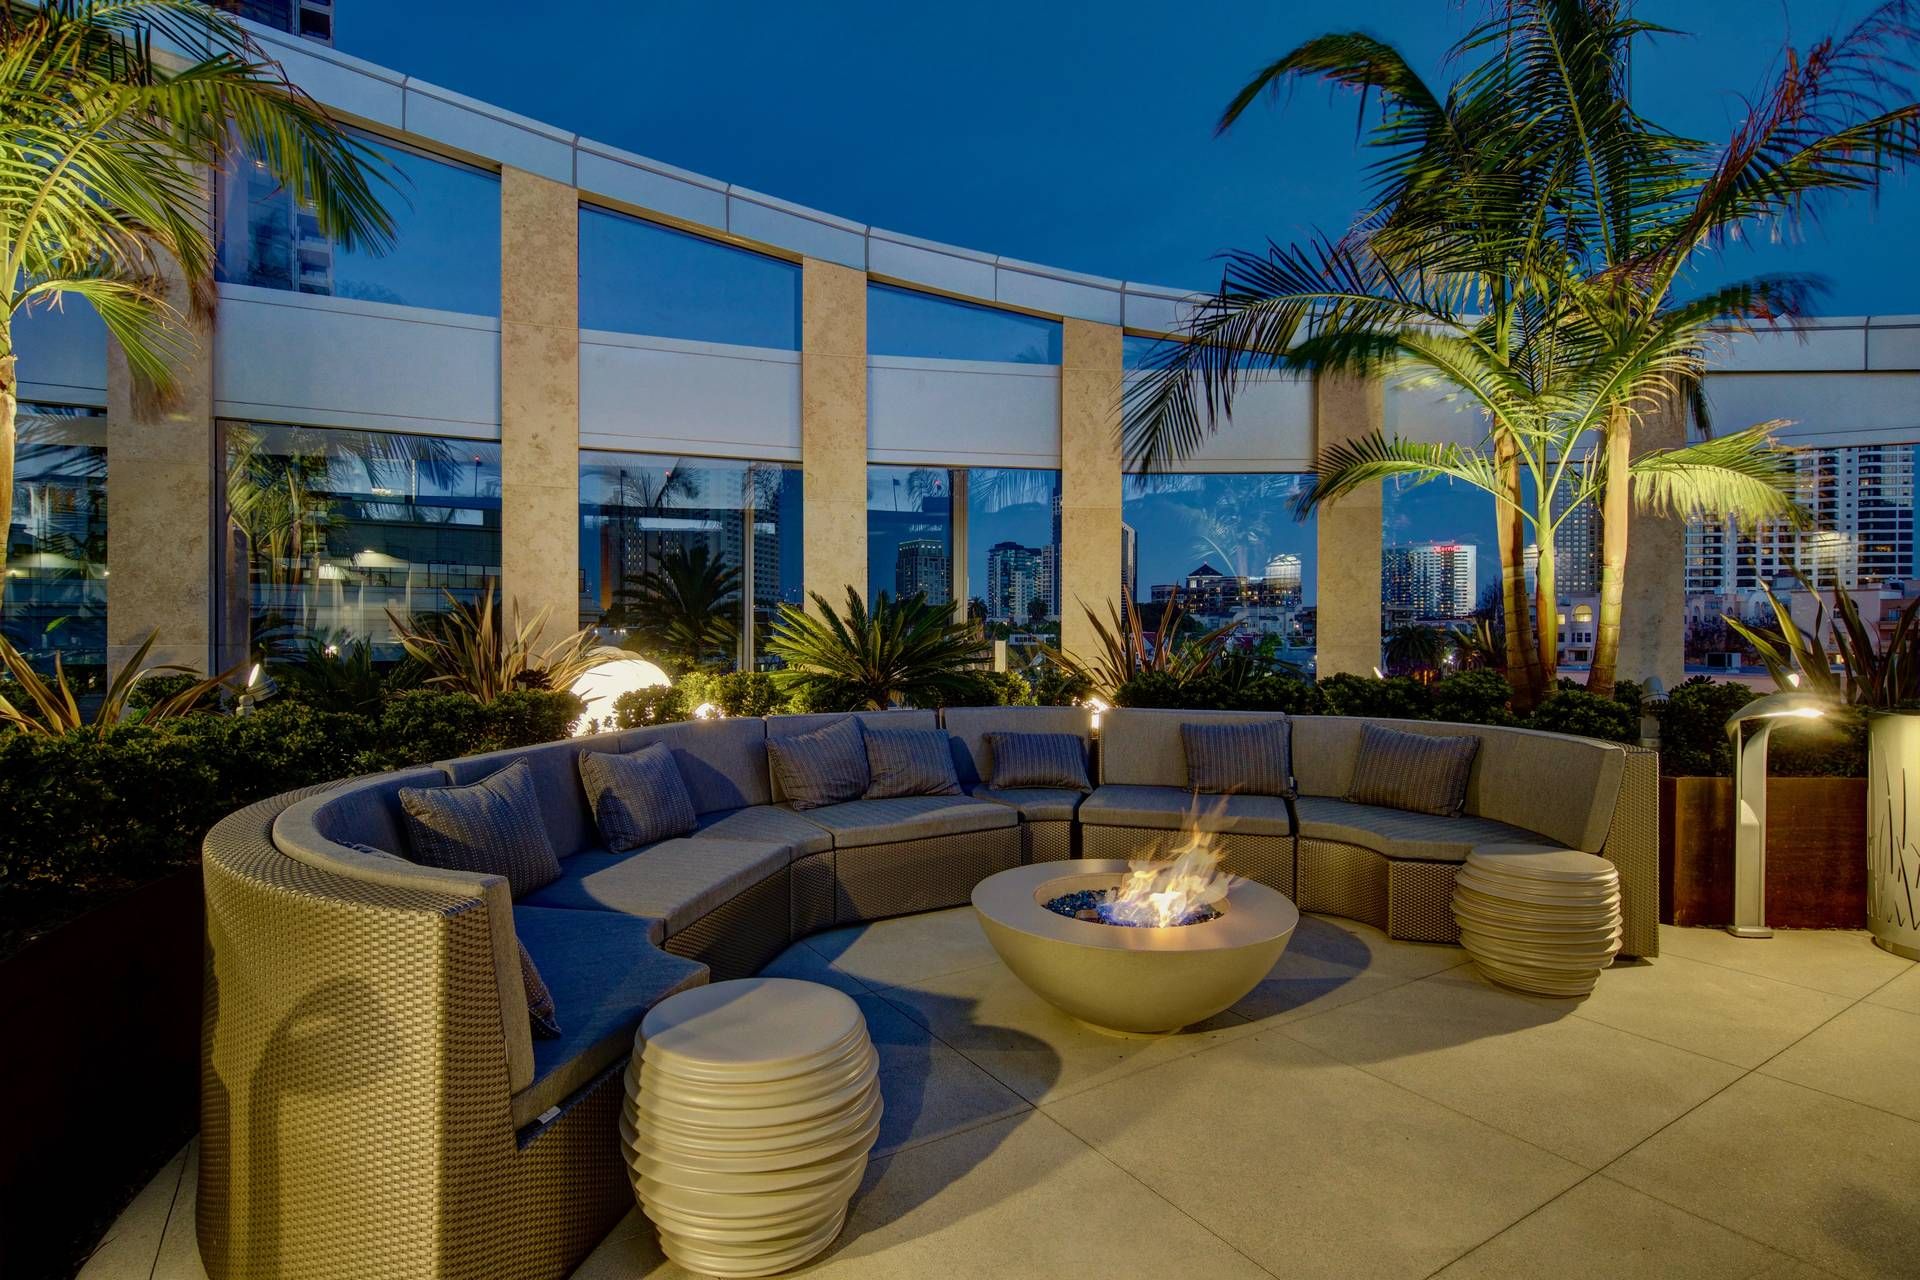 Outdoor Lounge at Sunset Pacific Gate San Diego